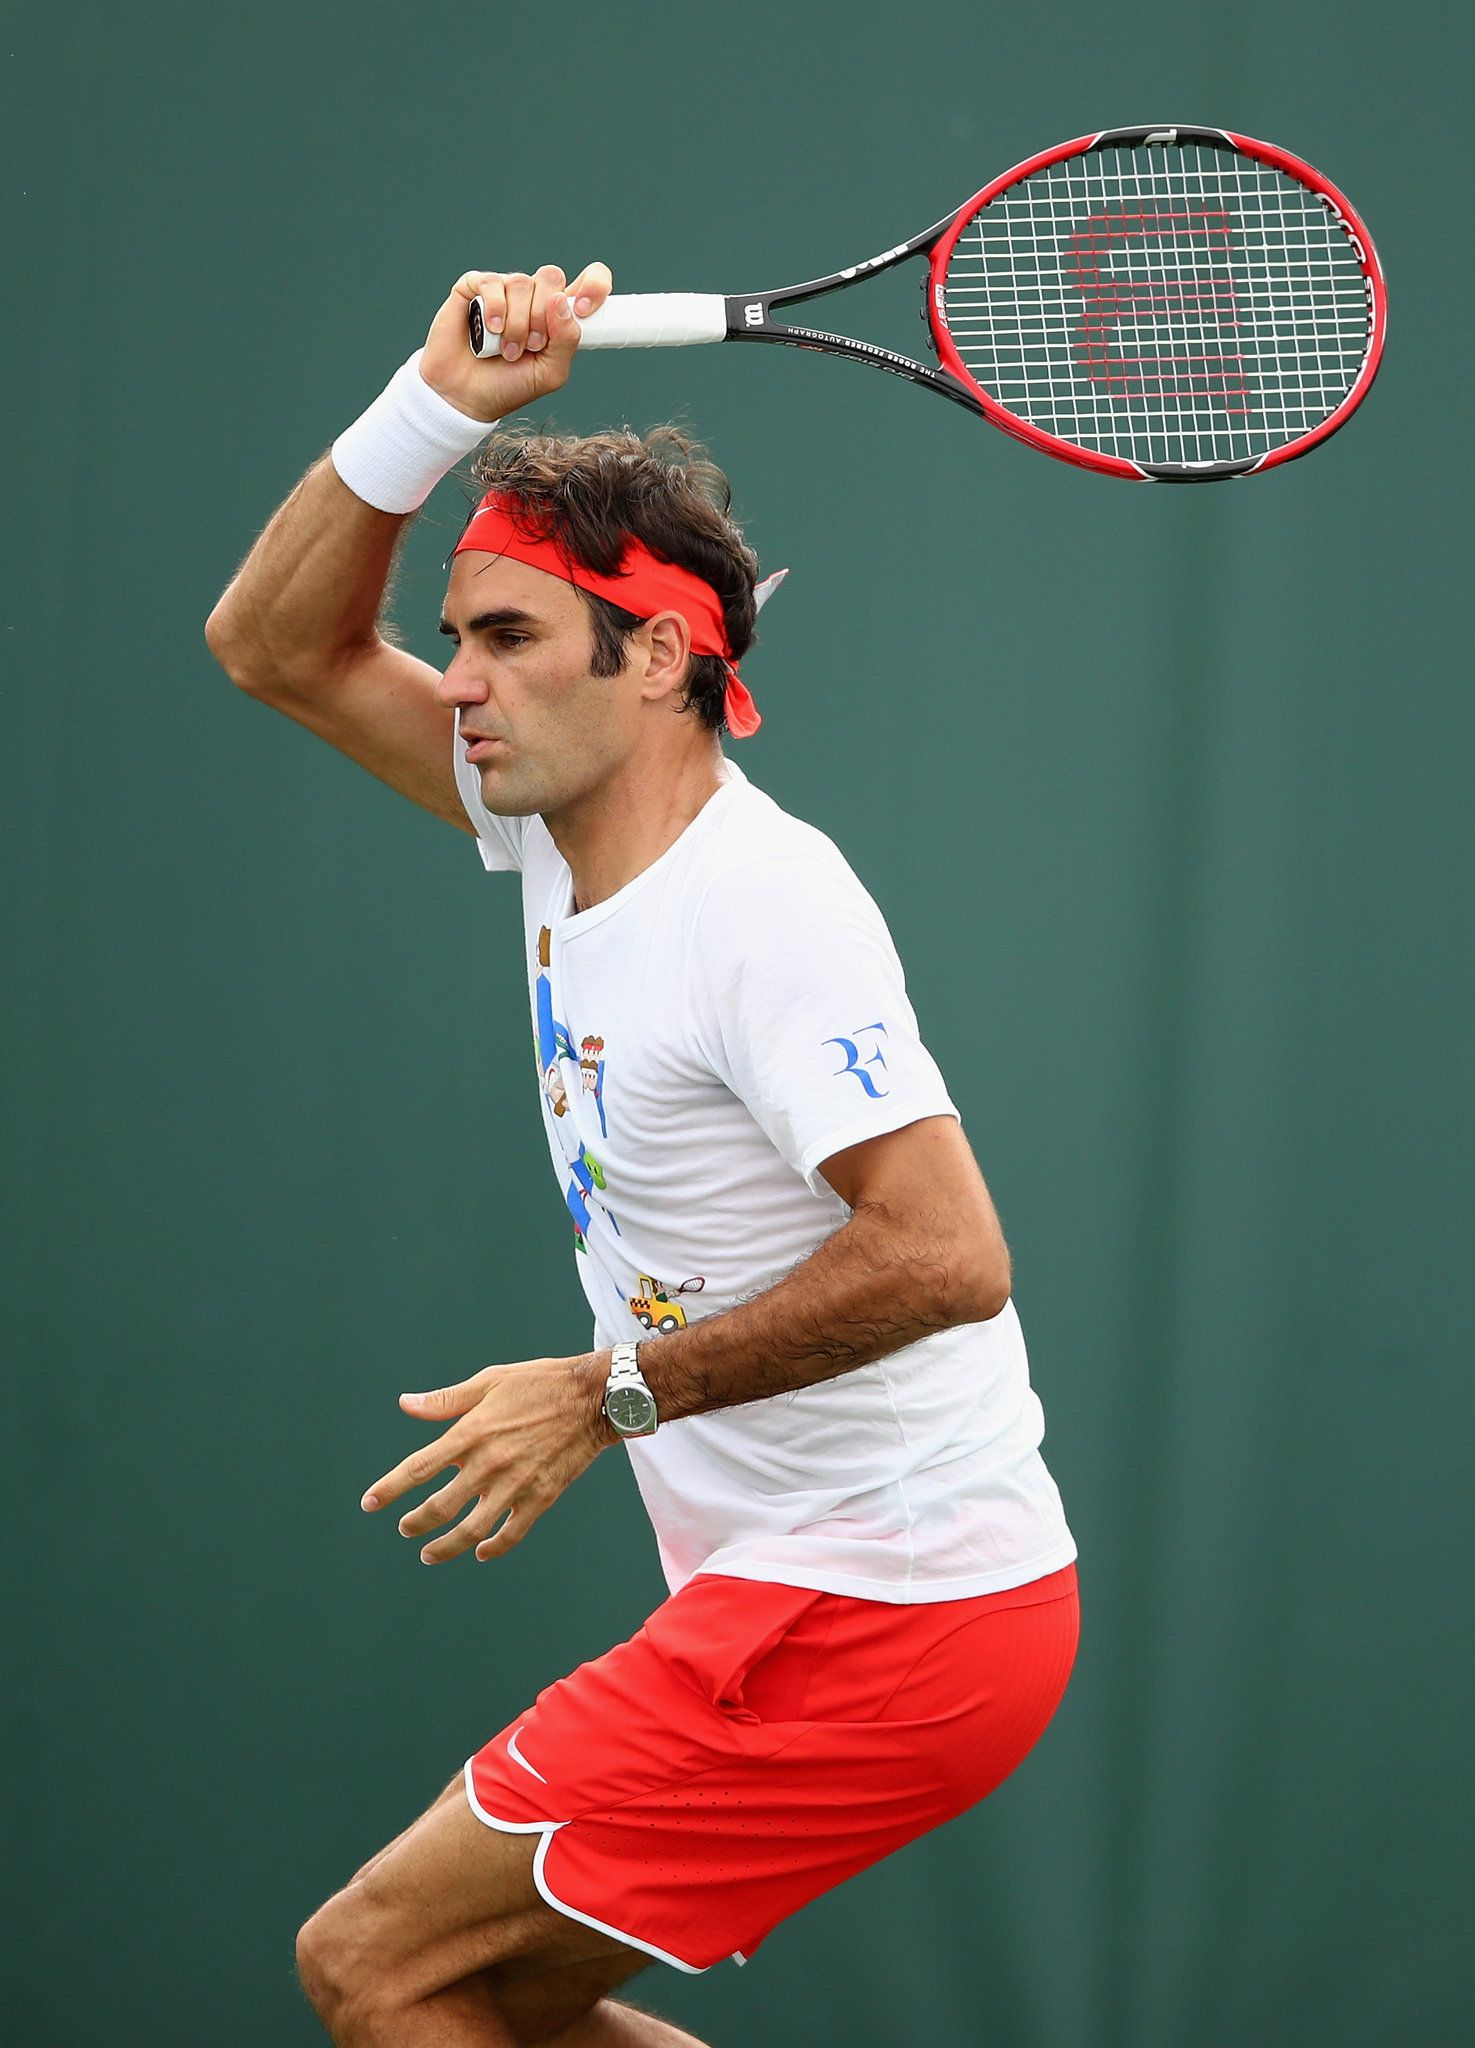 Roger Federer Wallpapers for Iphone 7 Iphone 7 plus Iphone 6 1475x2048